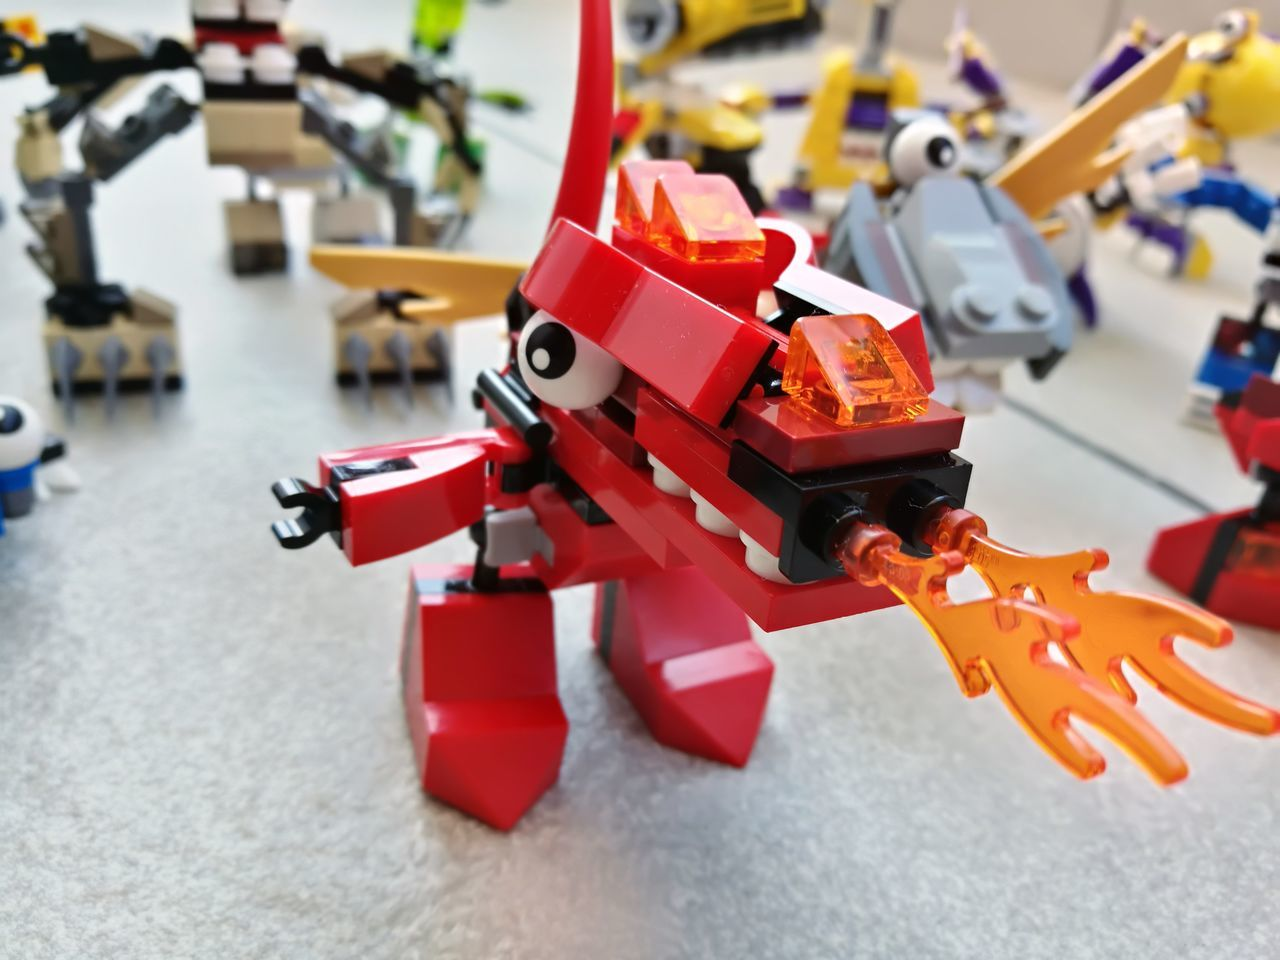 Red Legofan Lego Art LEGO Legophotography Focus On Foreground Robot Plastic Model - Object dragon Gragonfly Fire